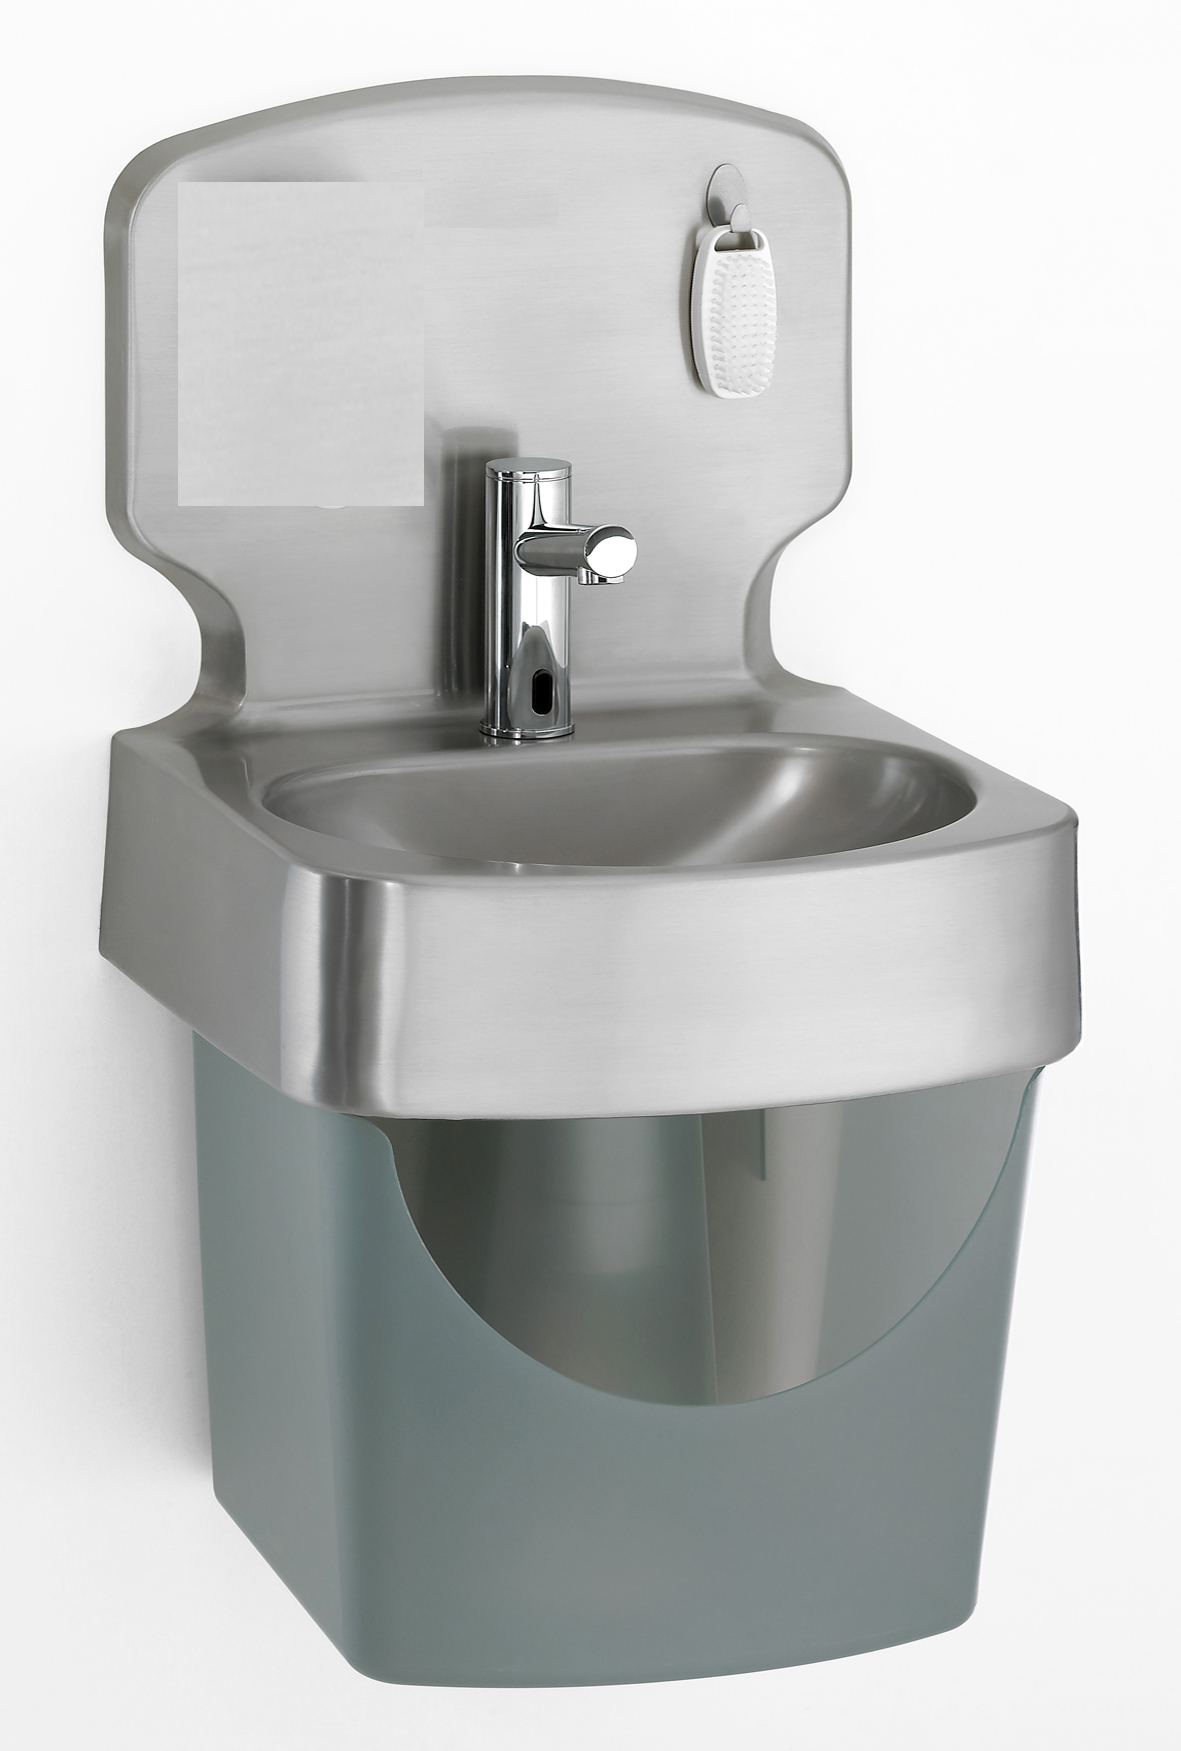 Wash Basin - Wall Hung Stainless Steel Electronic valve sink and